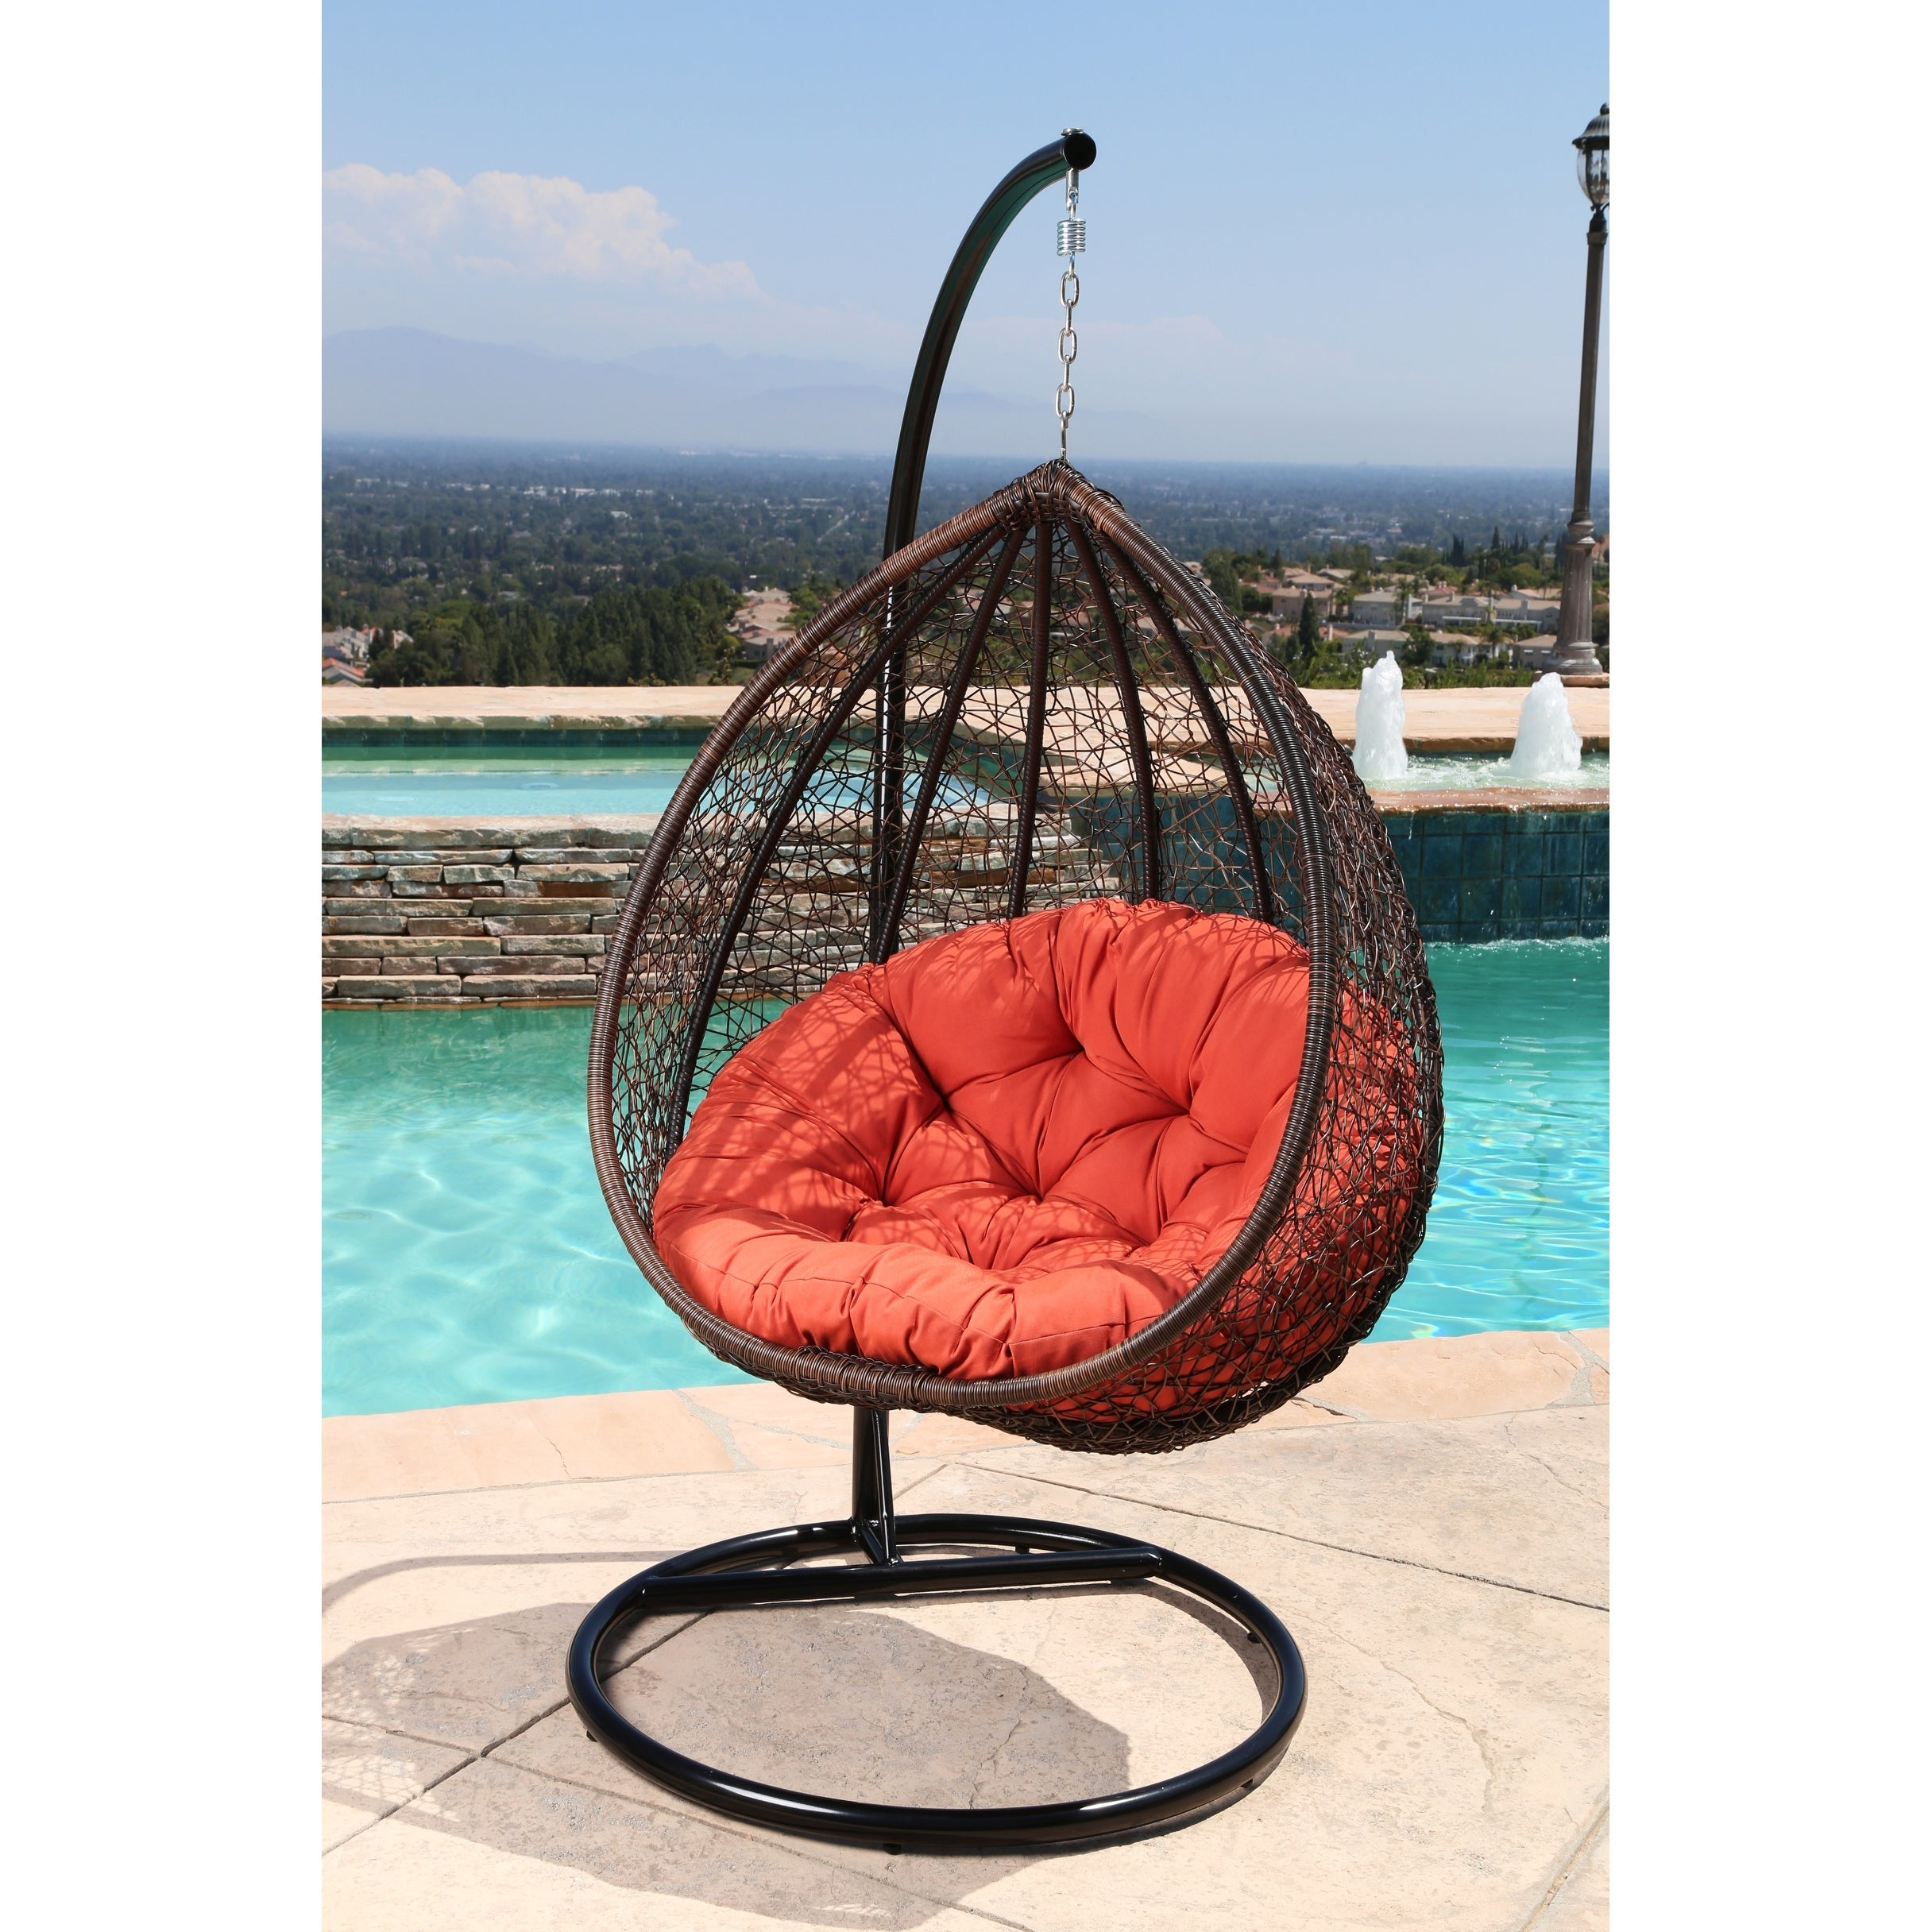 x replacement nikael size fun hilarious garden outdoor dk furniture hammock treasures swing hanging chairs chair unusual parts patio walmart endearing